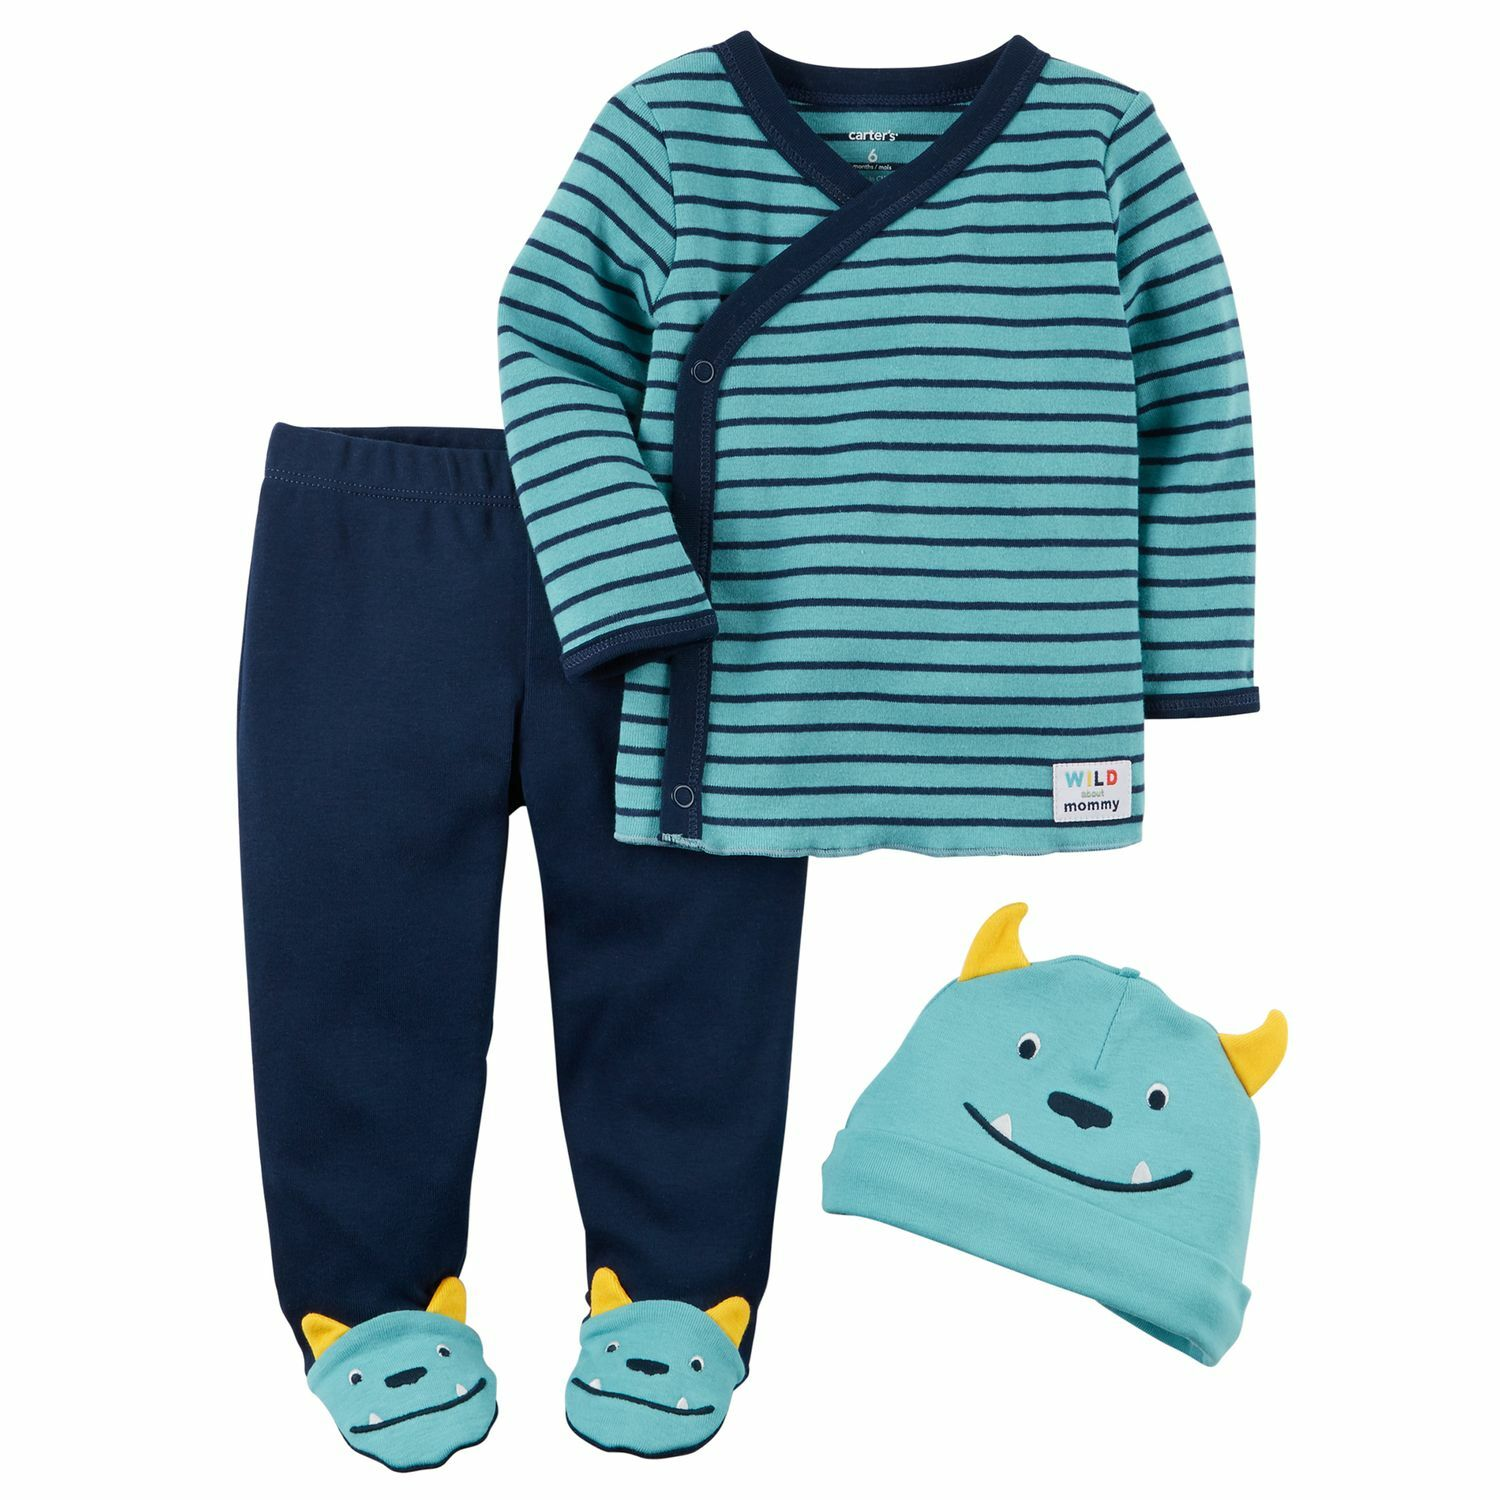 bb2aaa2bd Baby Boy Carter's Babysoft Striped Tee, Monster Footed Pants & Hat Set